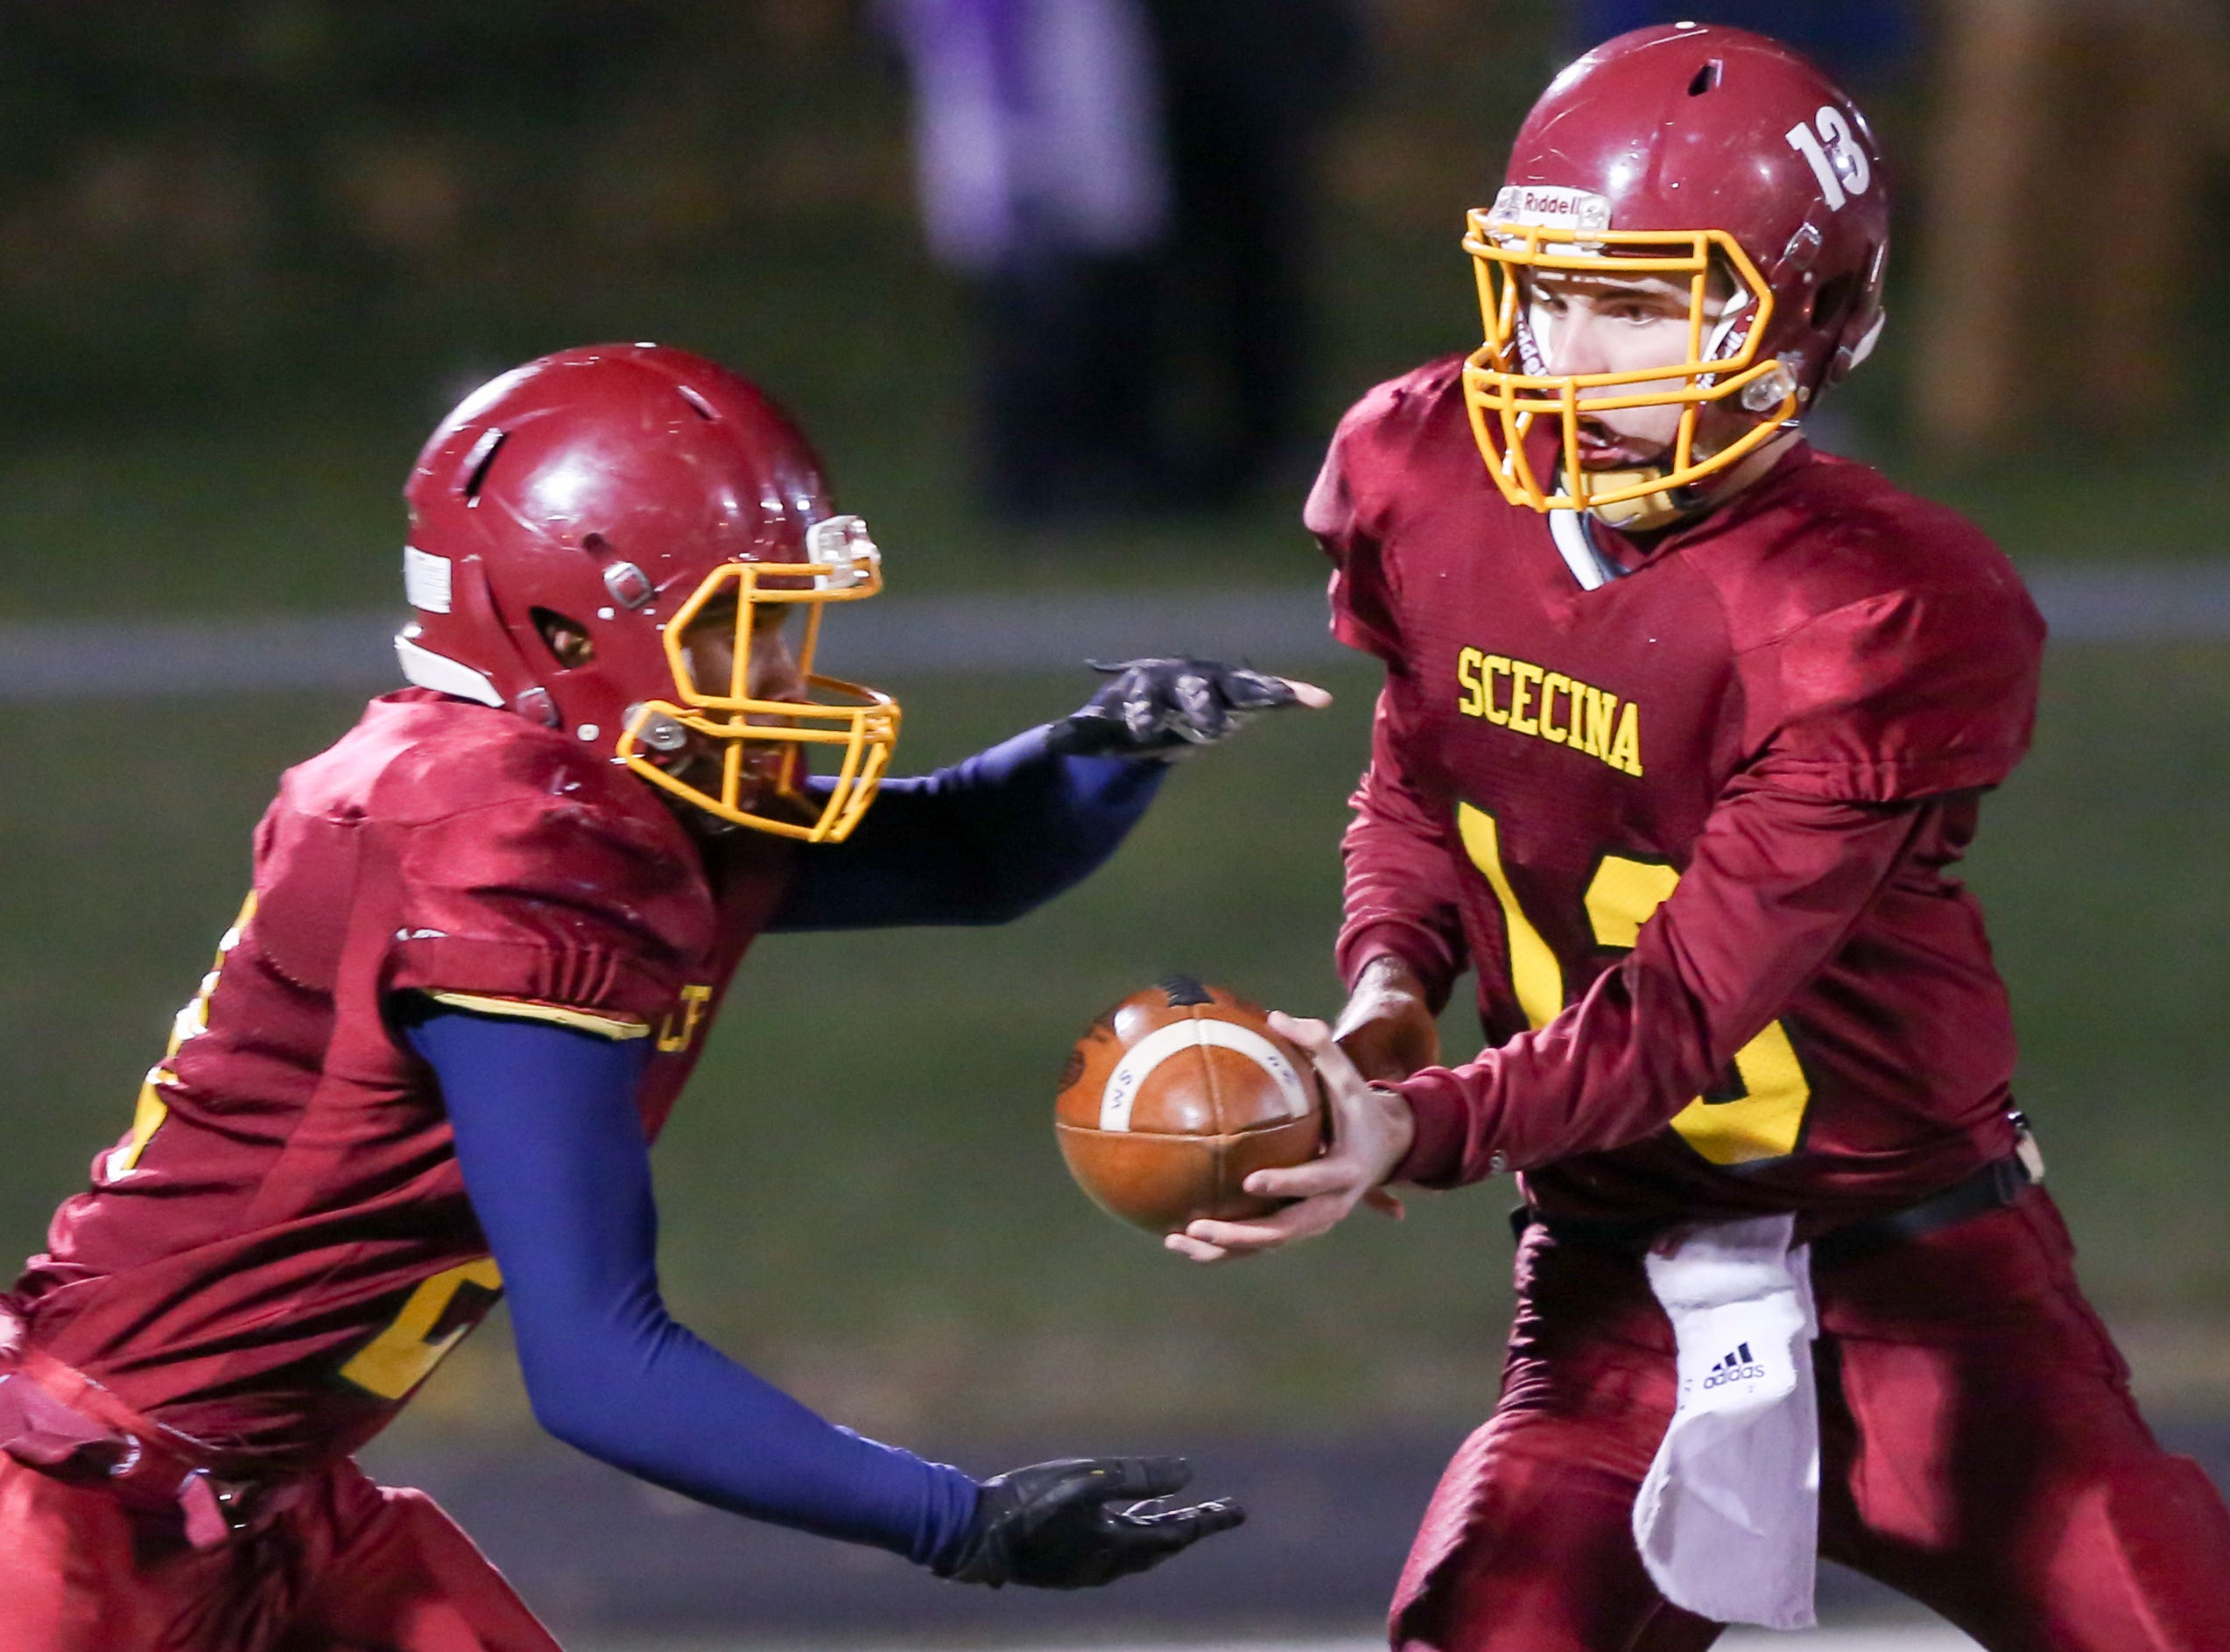 Scecina's Mac Ayres (13)  hands the ball off to Scecina's Tavon Middlebrook (21) during the first half of Indianapolis Scecina vs Western Boone High School varsity football in the Class 2A Regional Championship held at Roncalli High School, Friday, November 9, 2018.